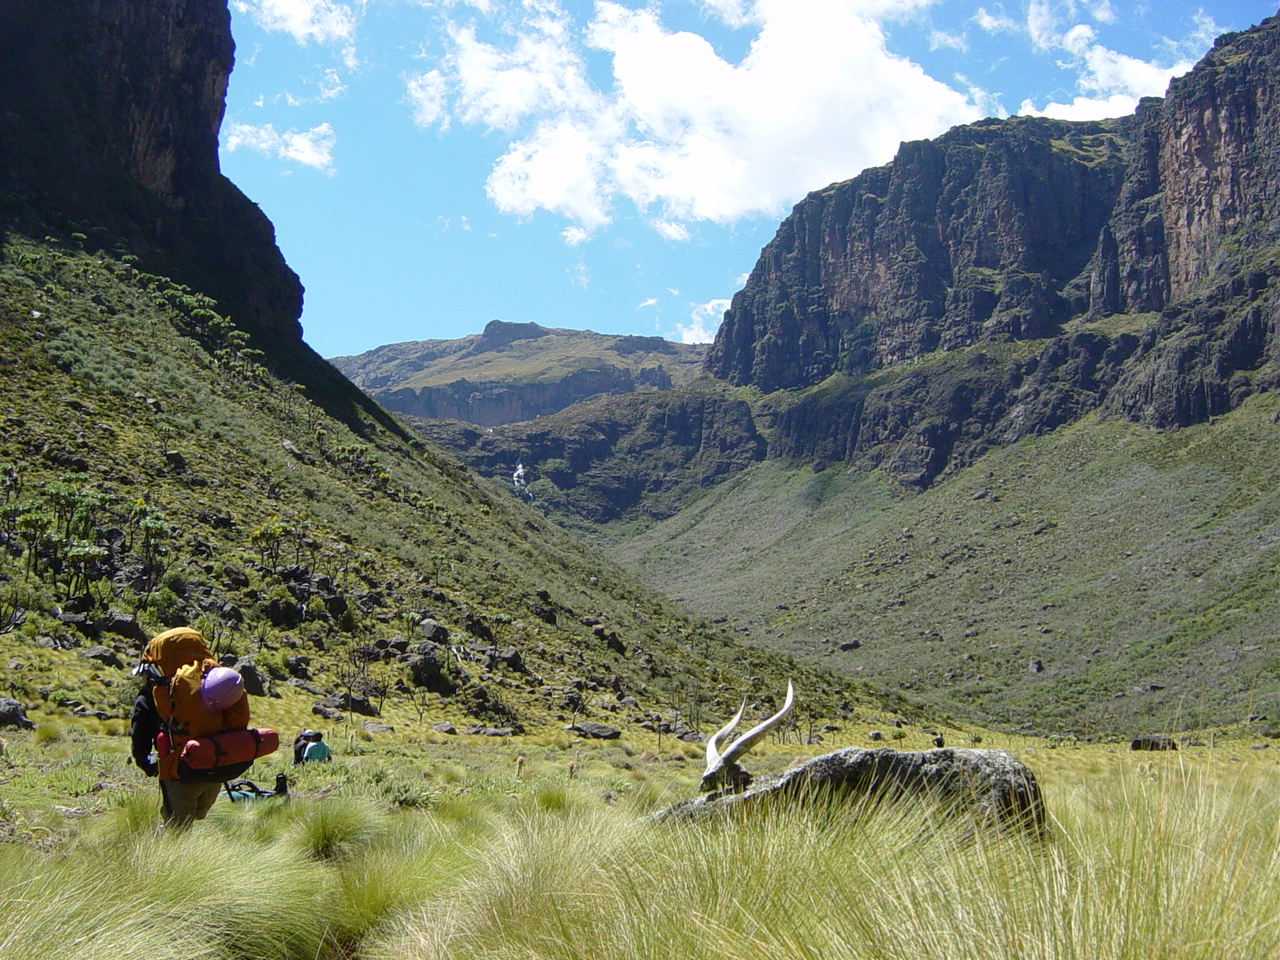 A participant hikes through high-altitude vegetation in the canyons surrounding Mt. Kenya.